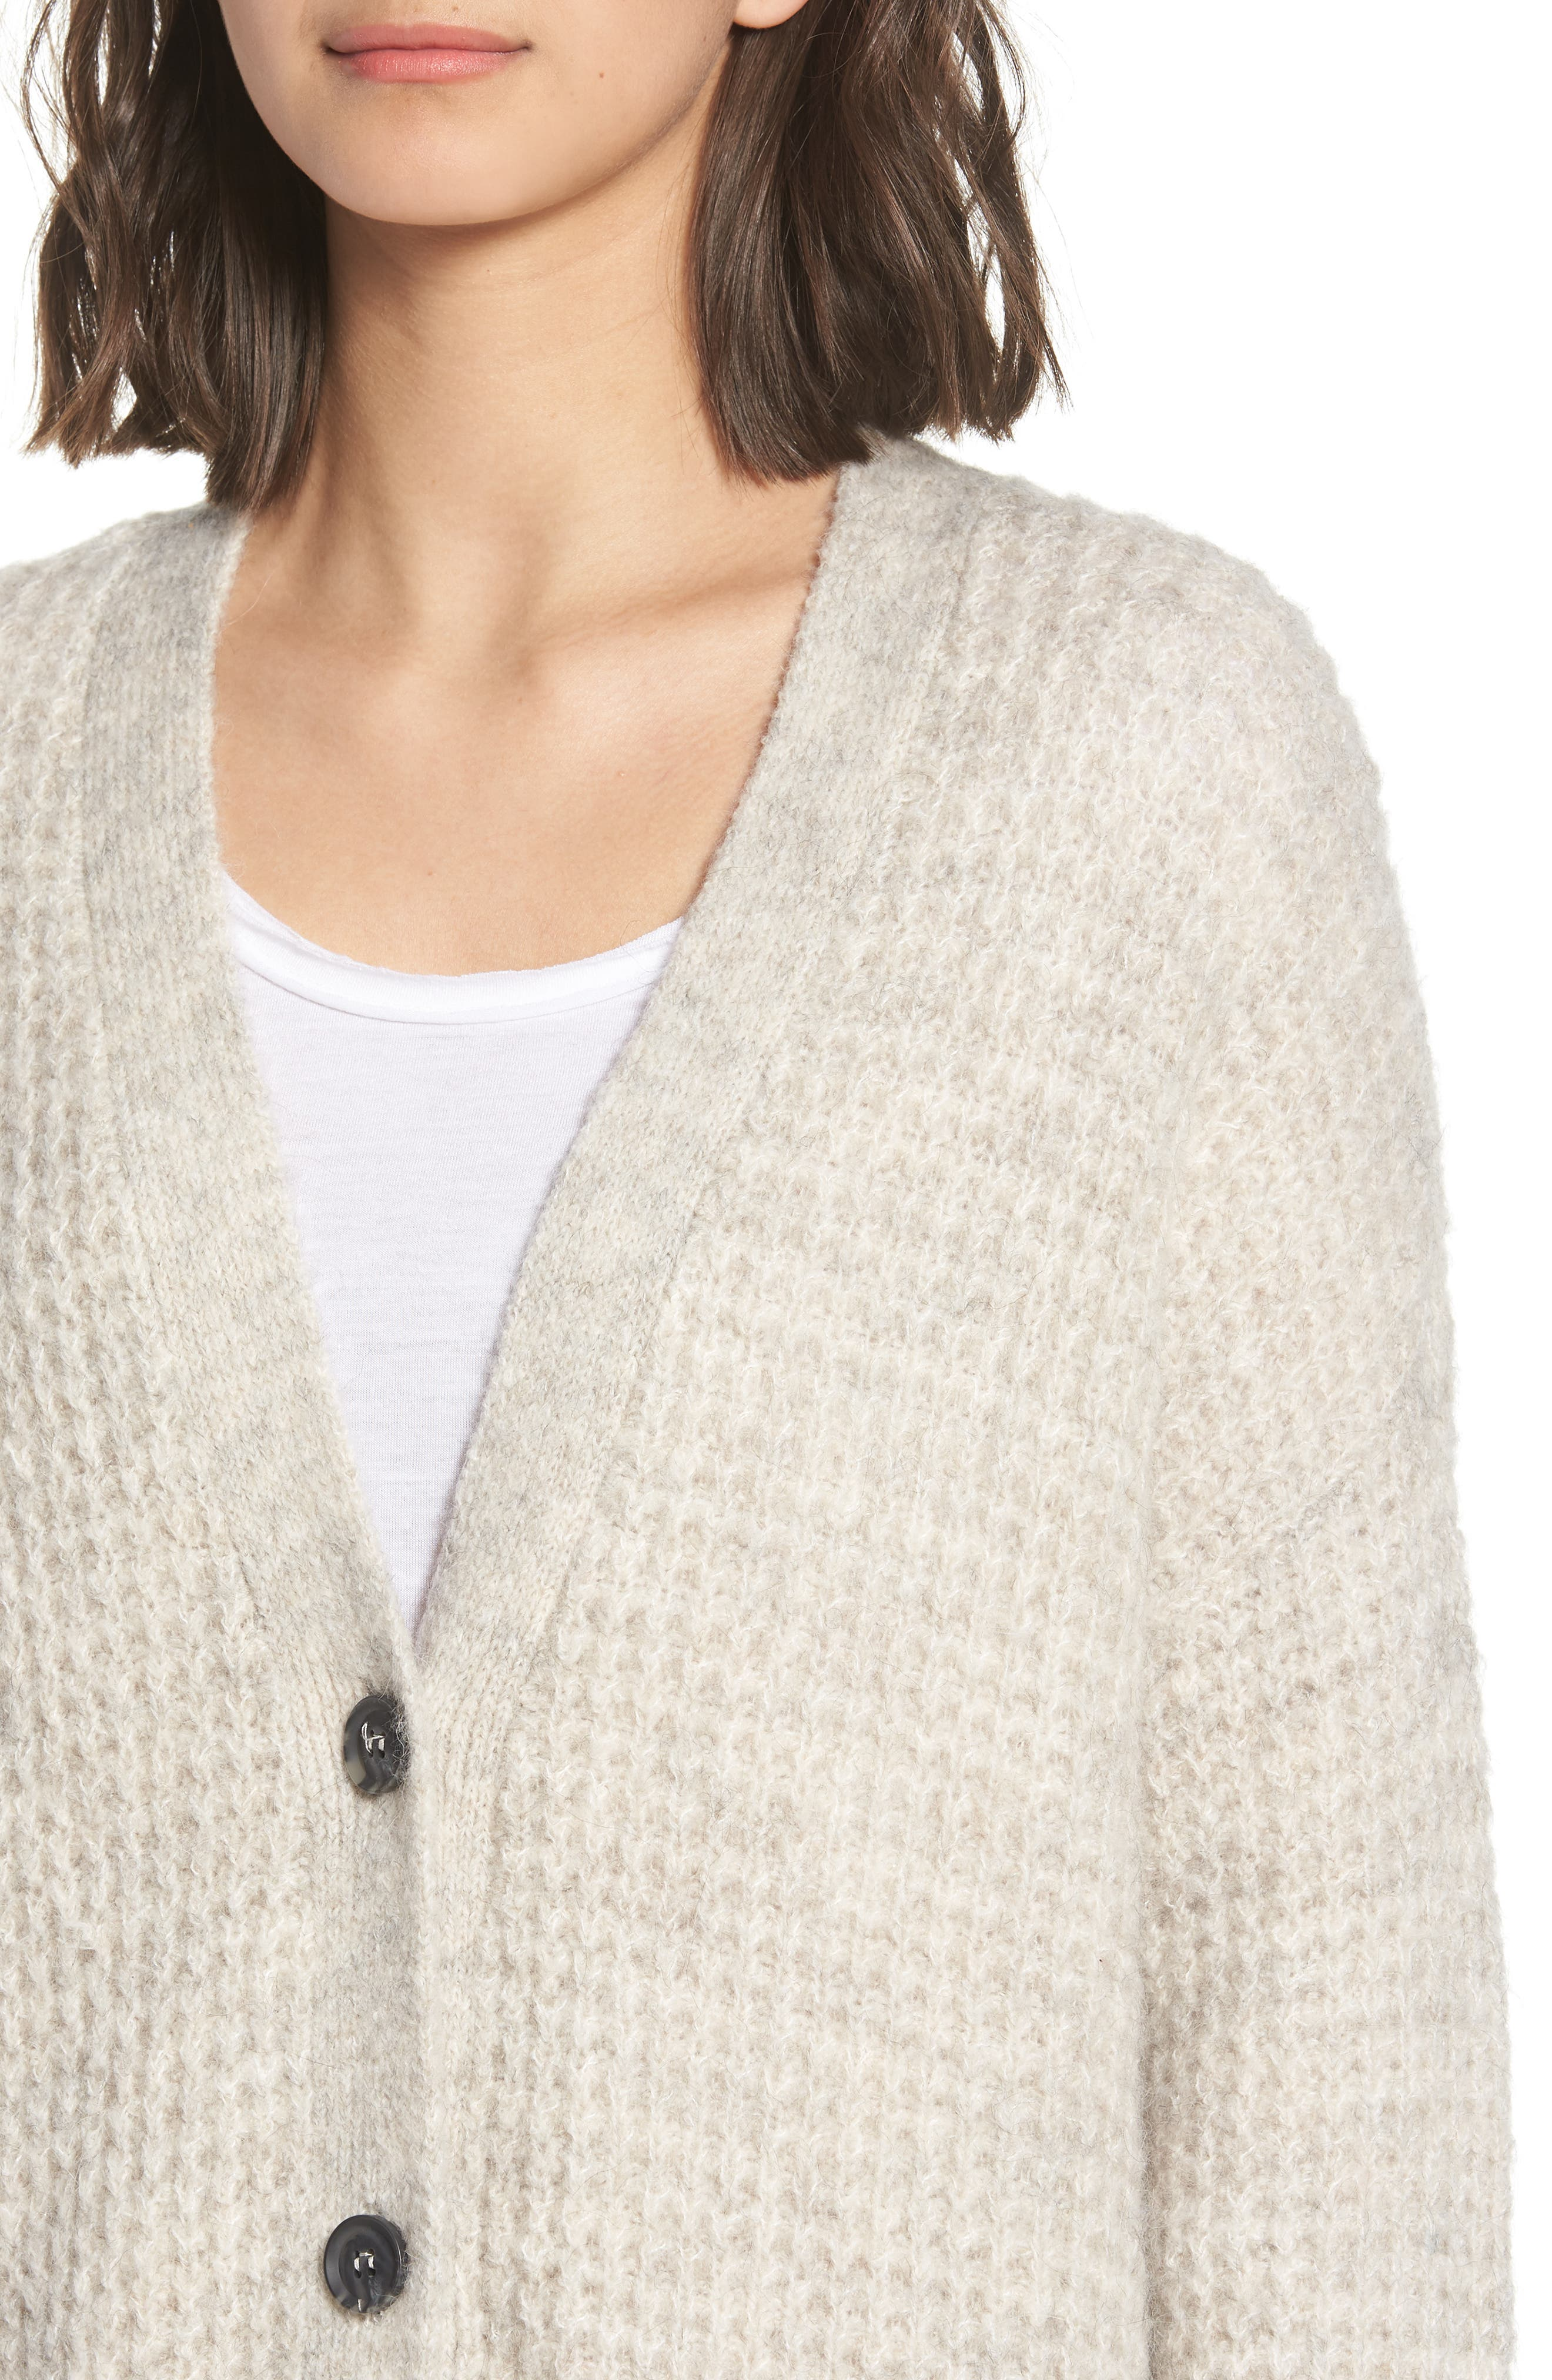 Oversized Waffle Stitch Cardigan,                             Alternate thumbnail 4, color,                             Beige Birch